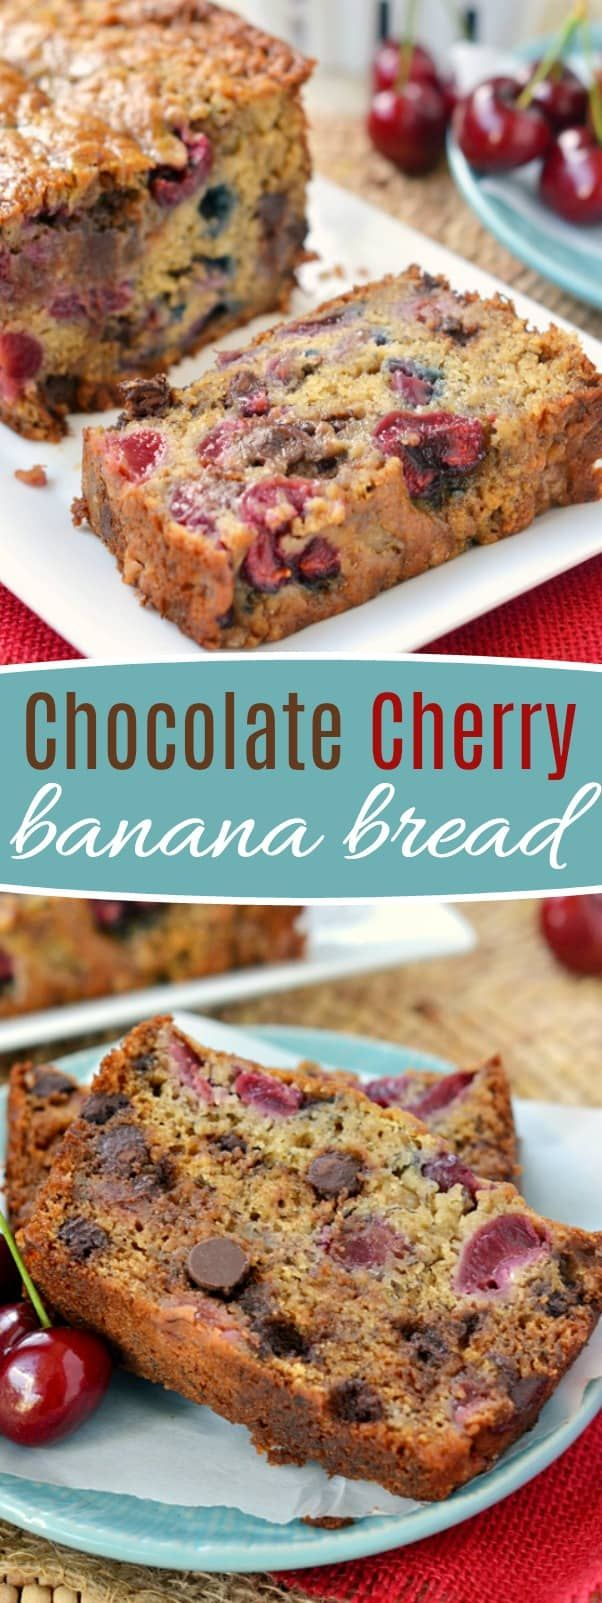 Your new favorite banana bread - Chocolate Cherry Banana Bread